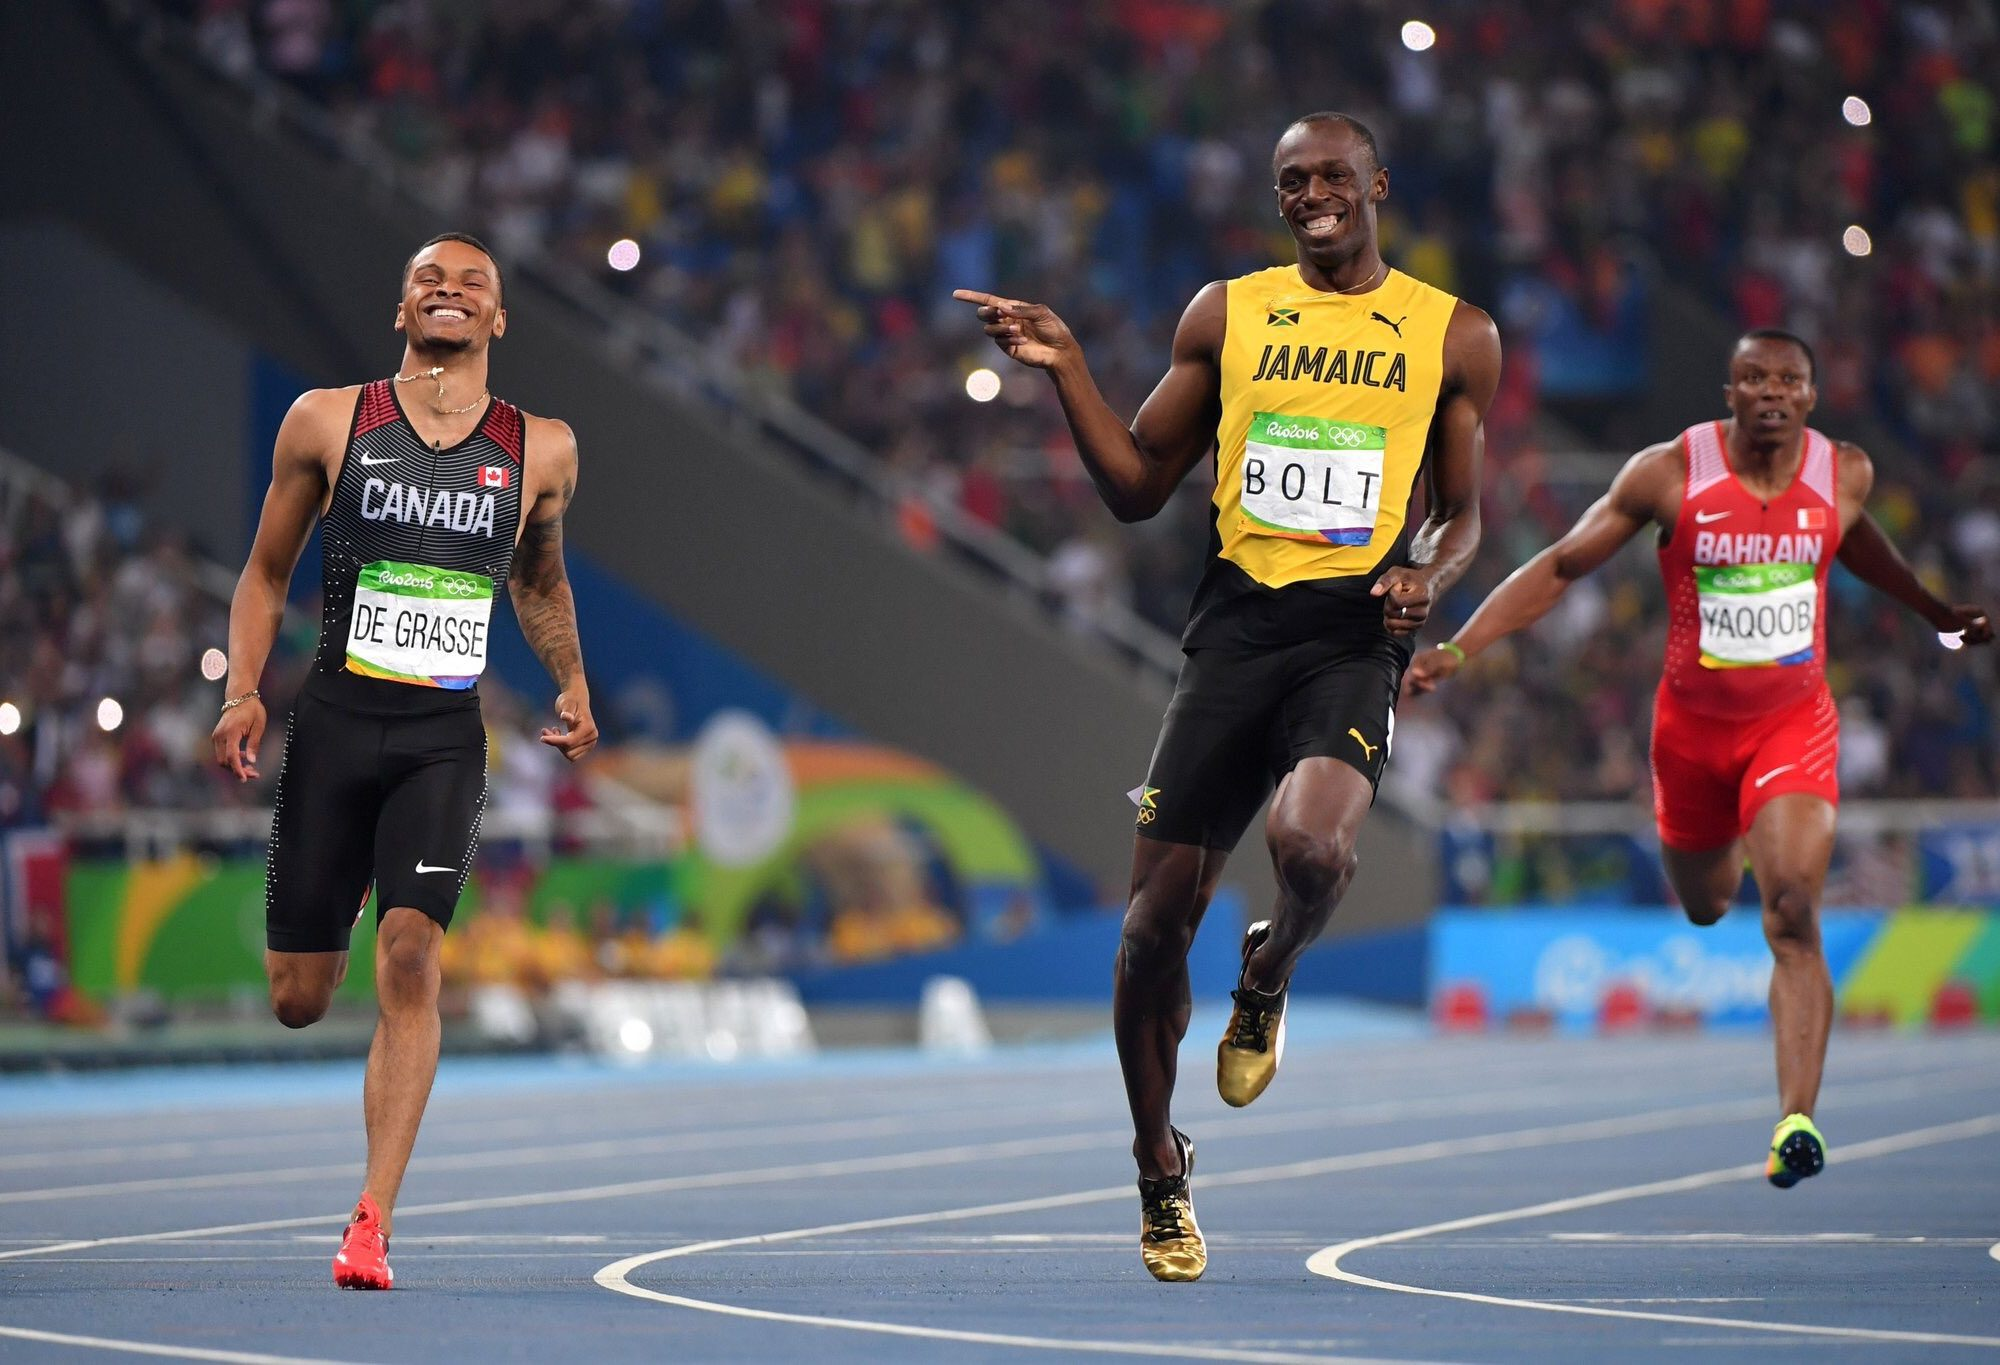 Usain Bolt sharing a laugh with Andre De Grasse during the Rio Olympics.